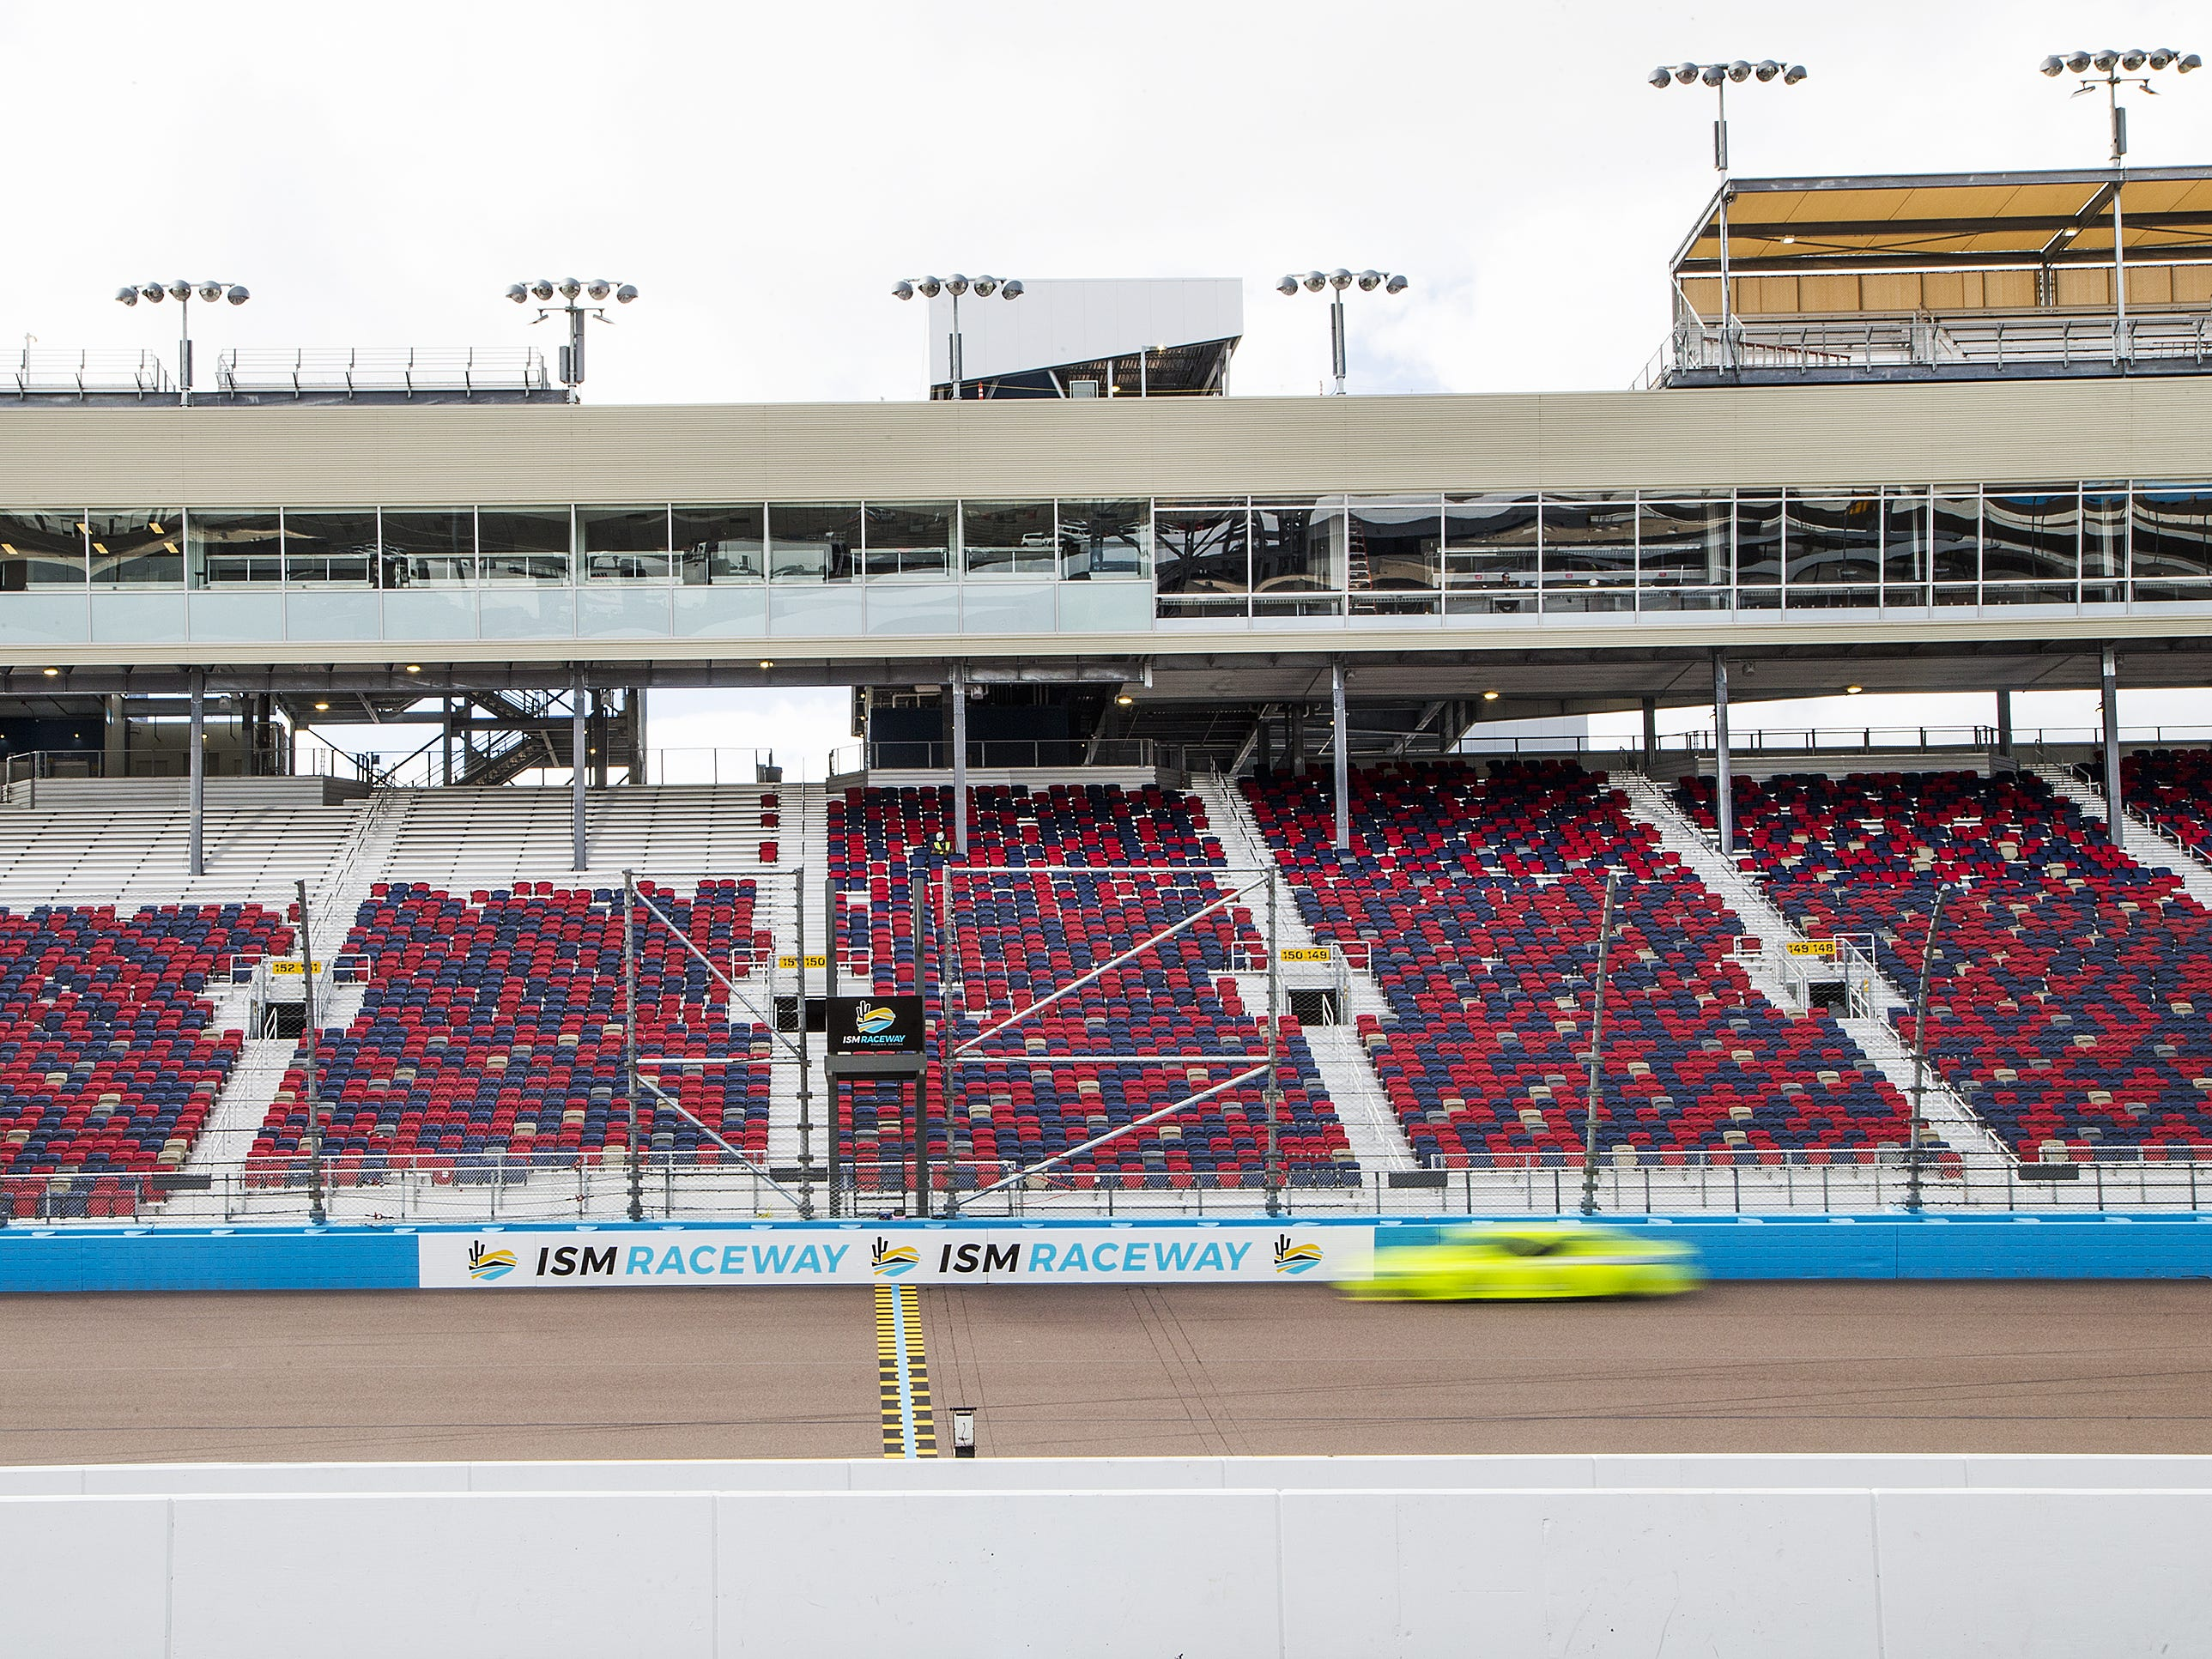 The new start-finish line at ISM Raceway in Phoenix.  Final touches are being completed in the massive renovation of the former Phoenix International Raceway, Wednesday, October 3, 2018.